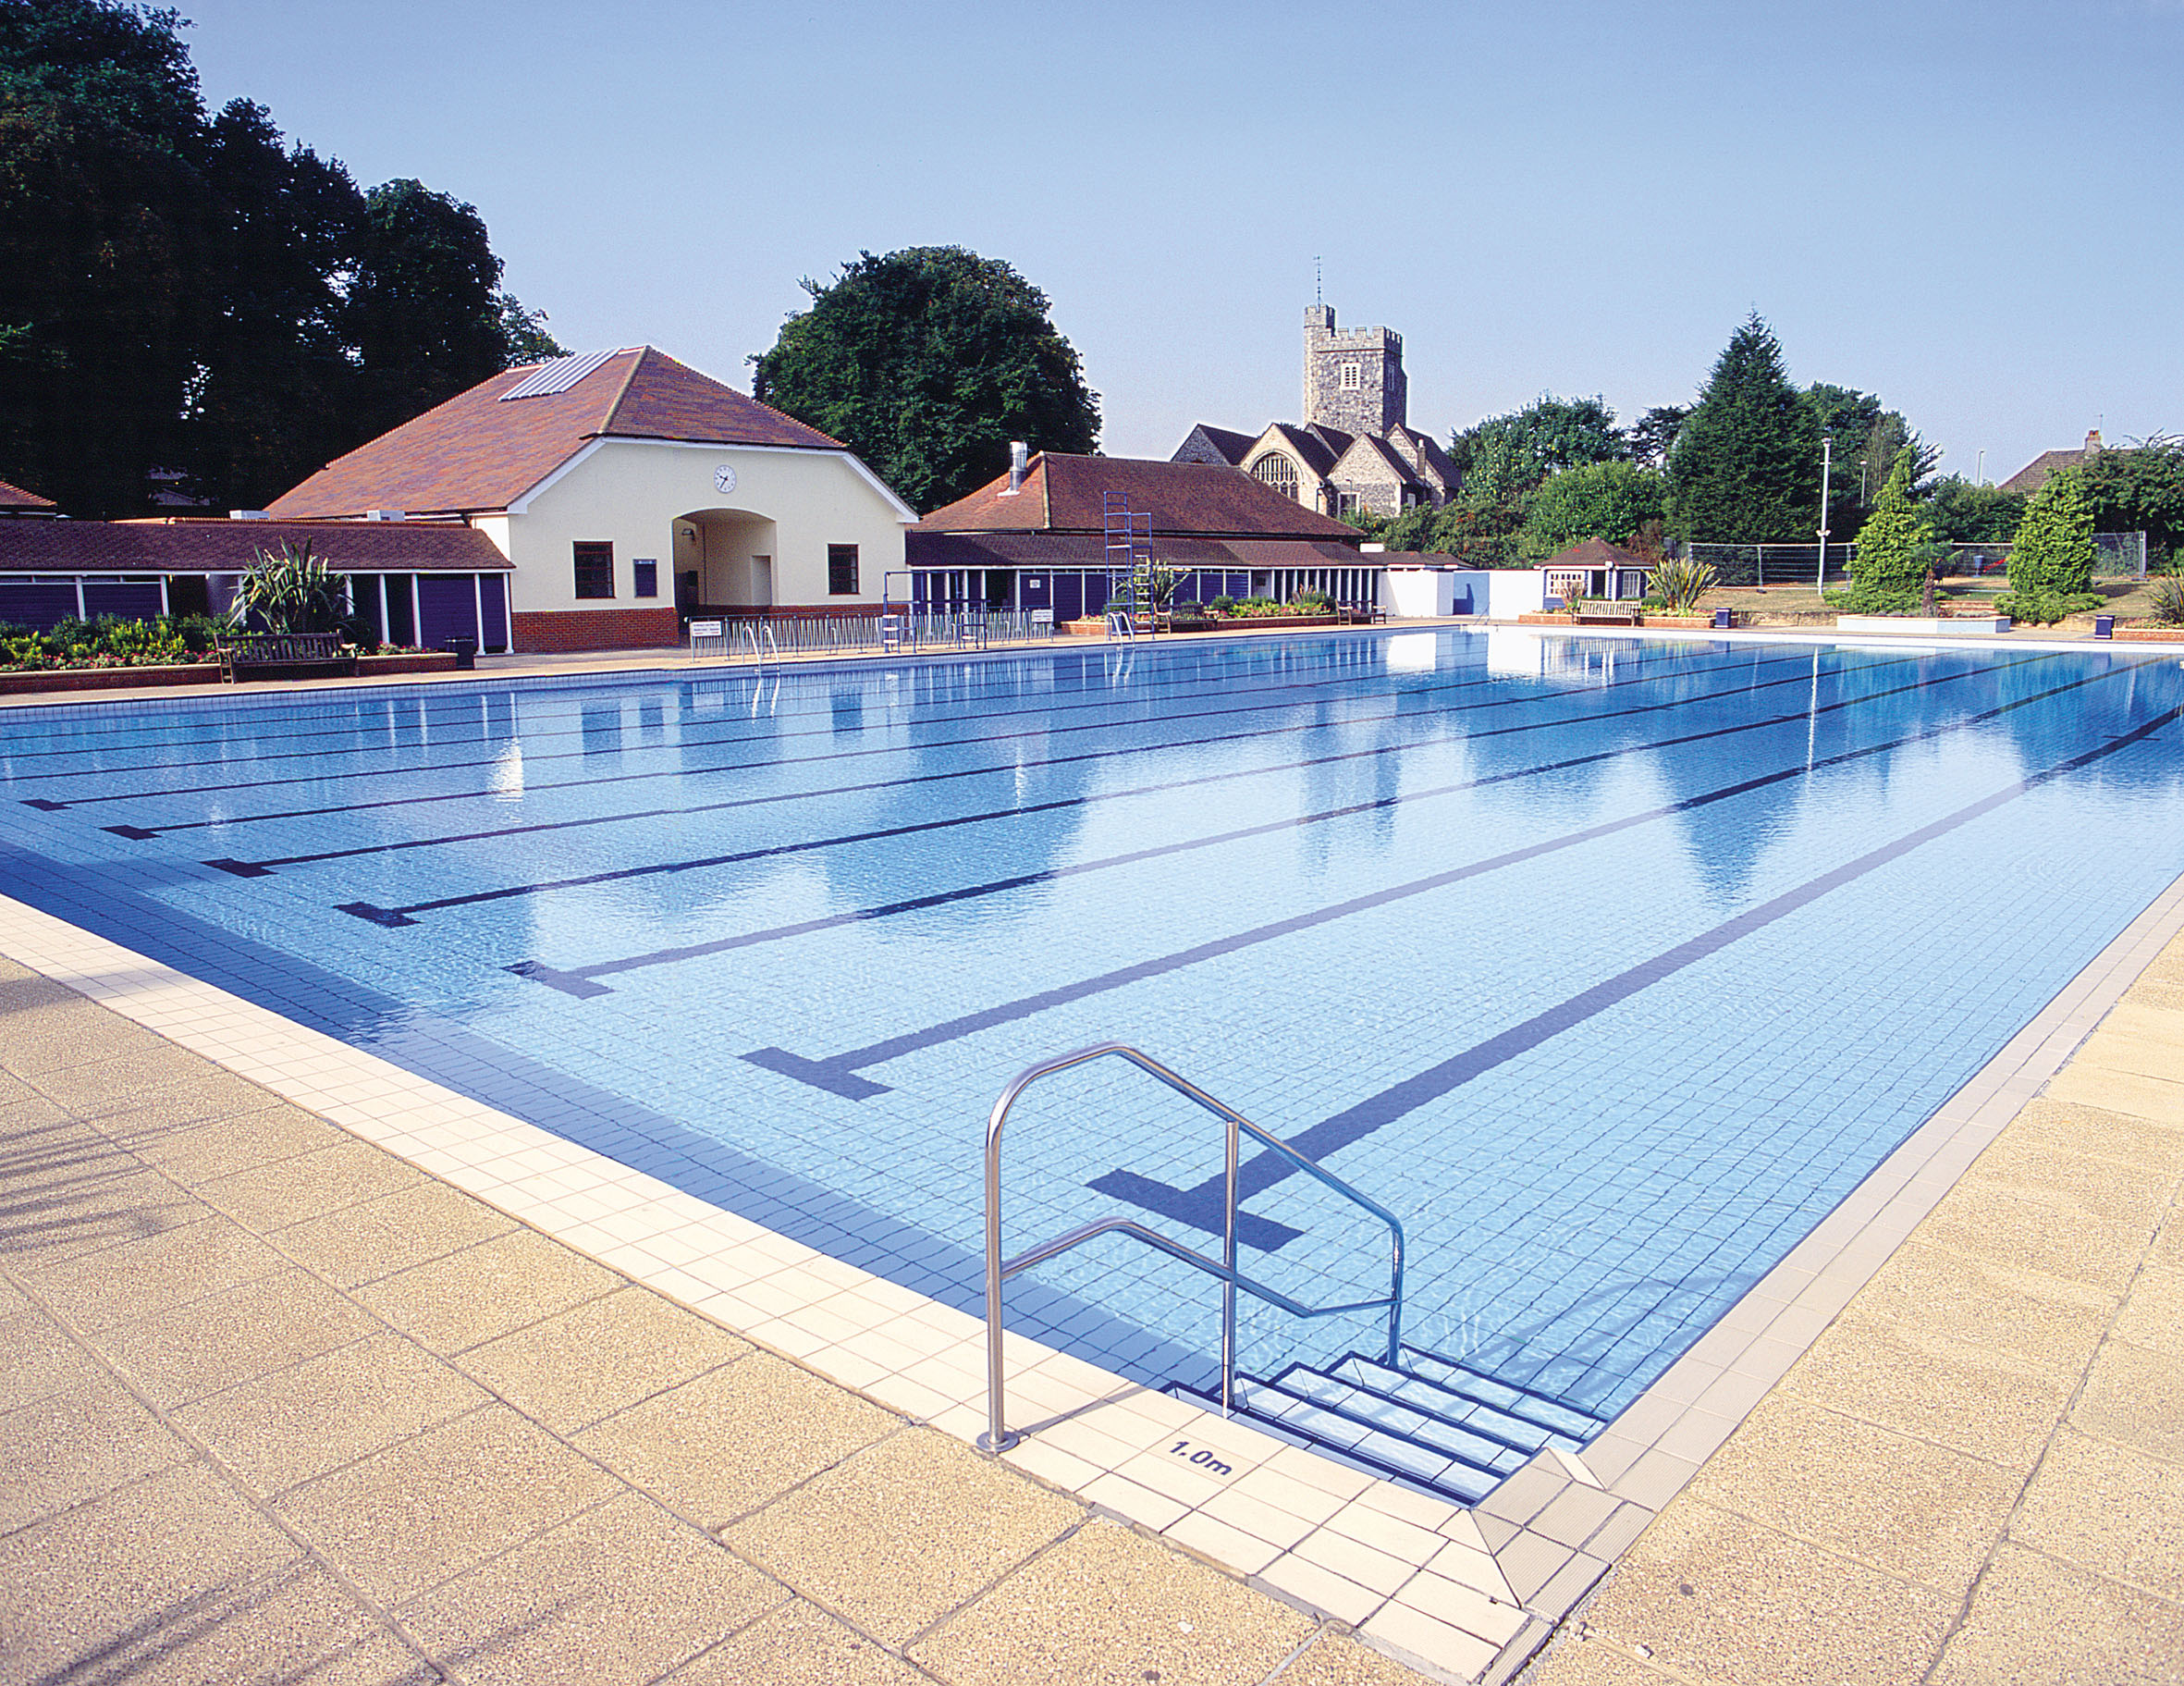 Guildford lido the fit writer nicola joyce for Abingdon swimming pool opening times